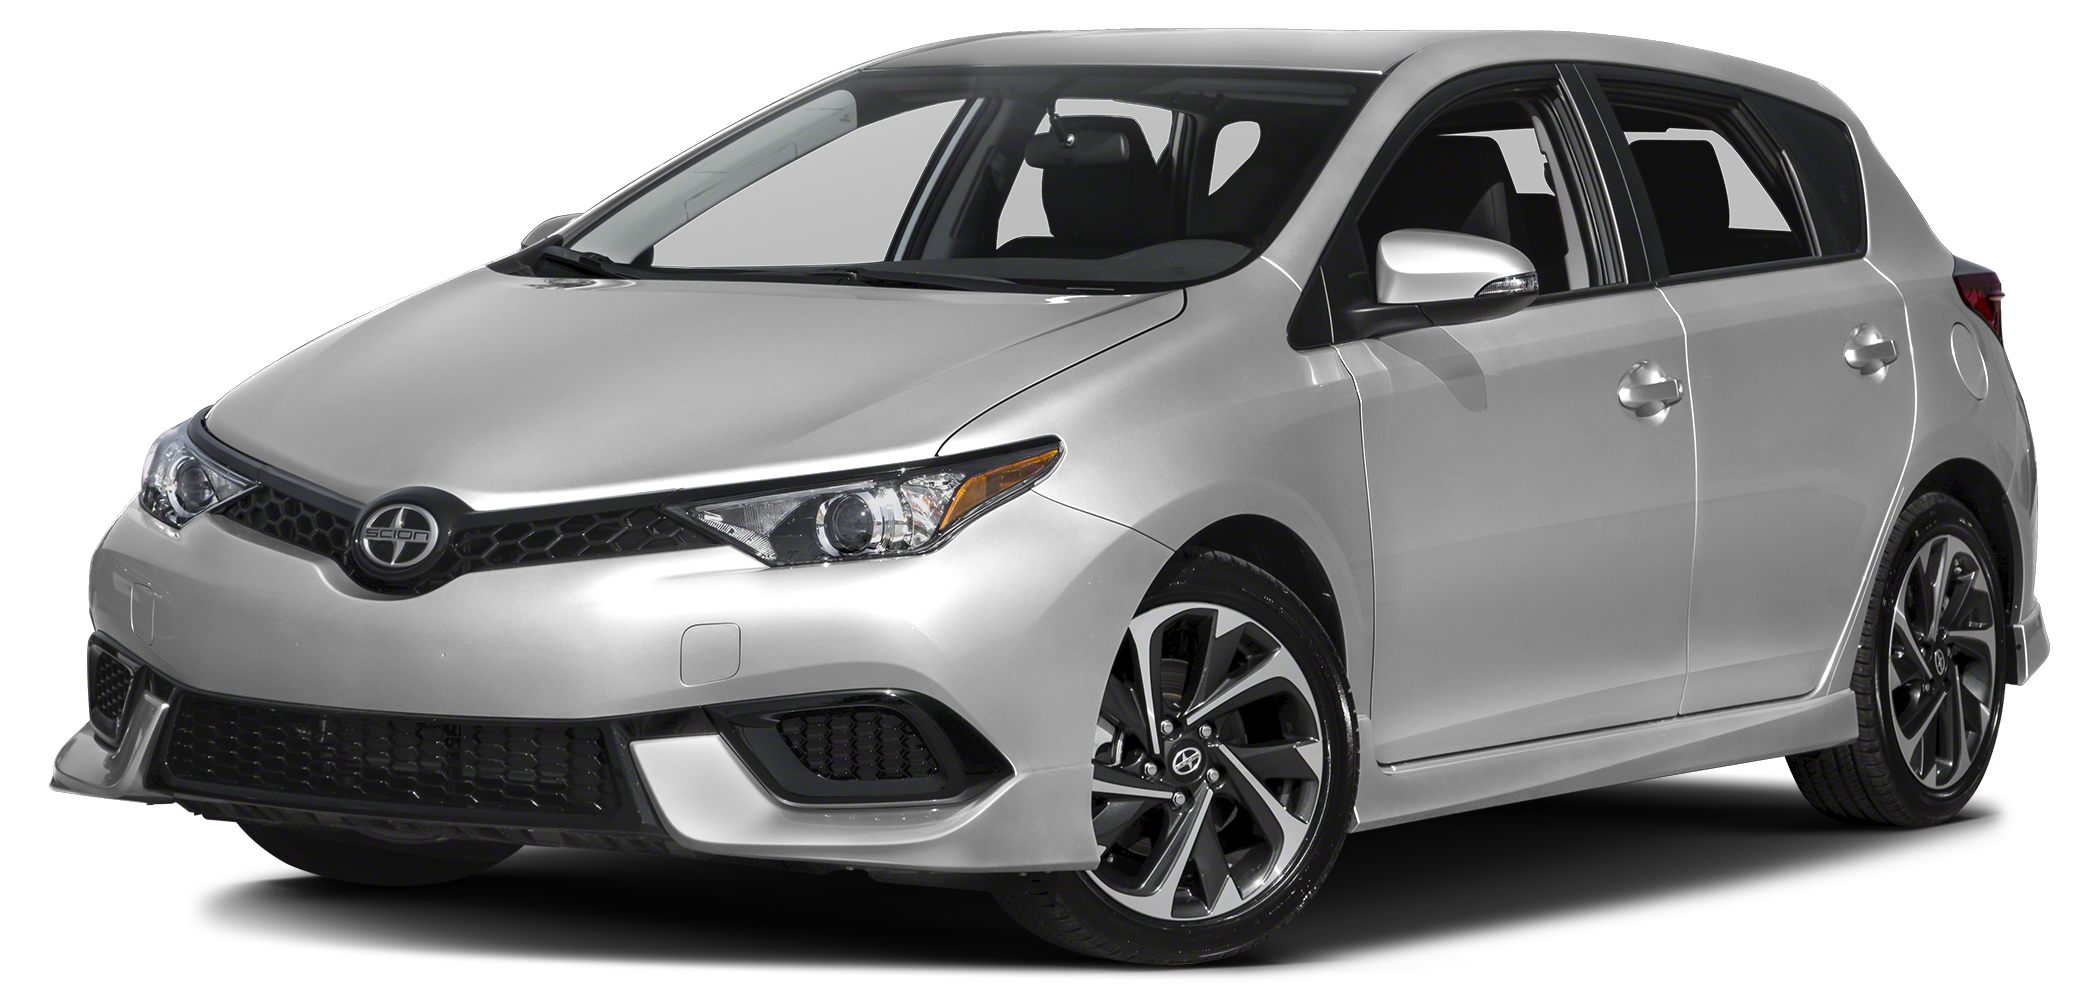 2016 Scion iM Base Prices are PLUS tax tag title fee 799 Pre-Delivery Service Fee and 185 E